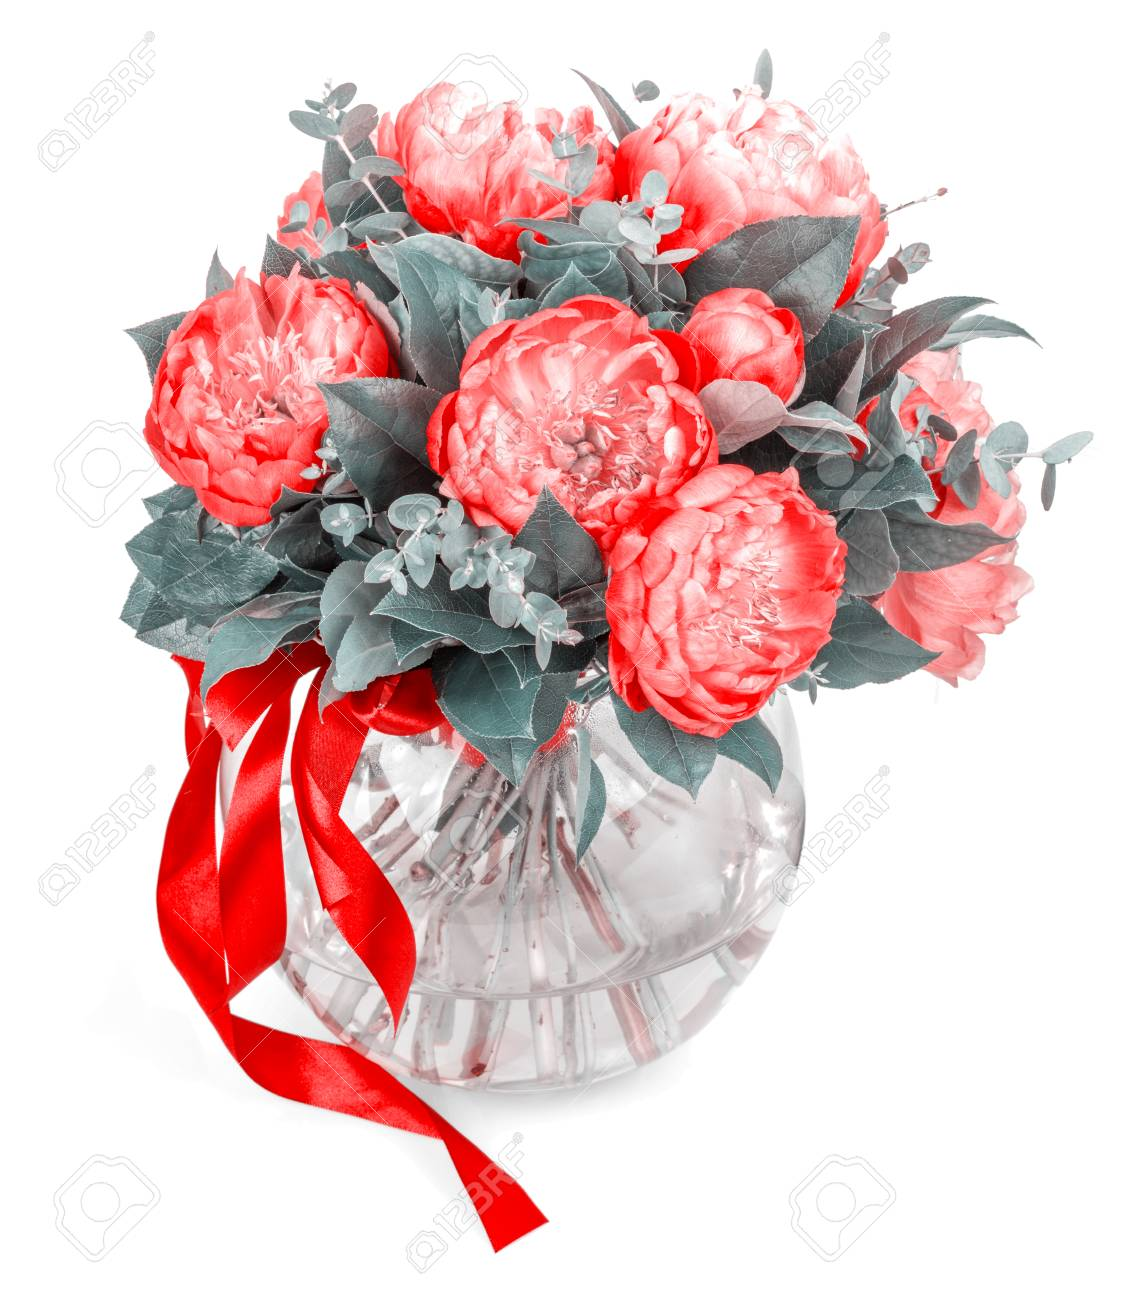 Amazing bouquet of pink pions on white background stock photo amazing bouquet of pink pions on white background stock photo 94107246 izmirmasajfo